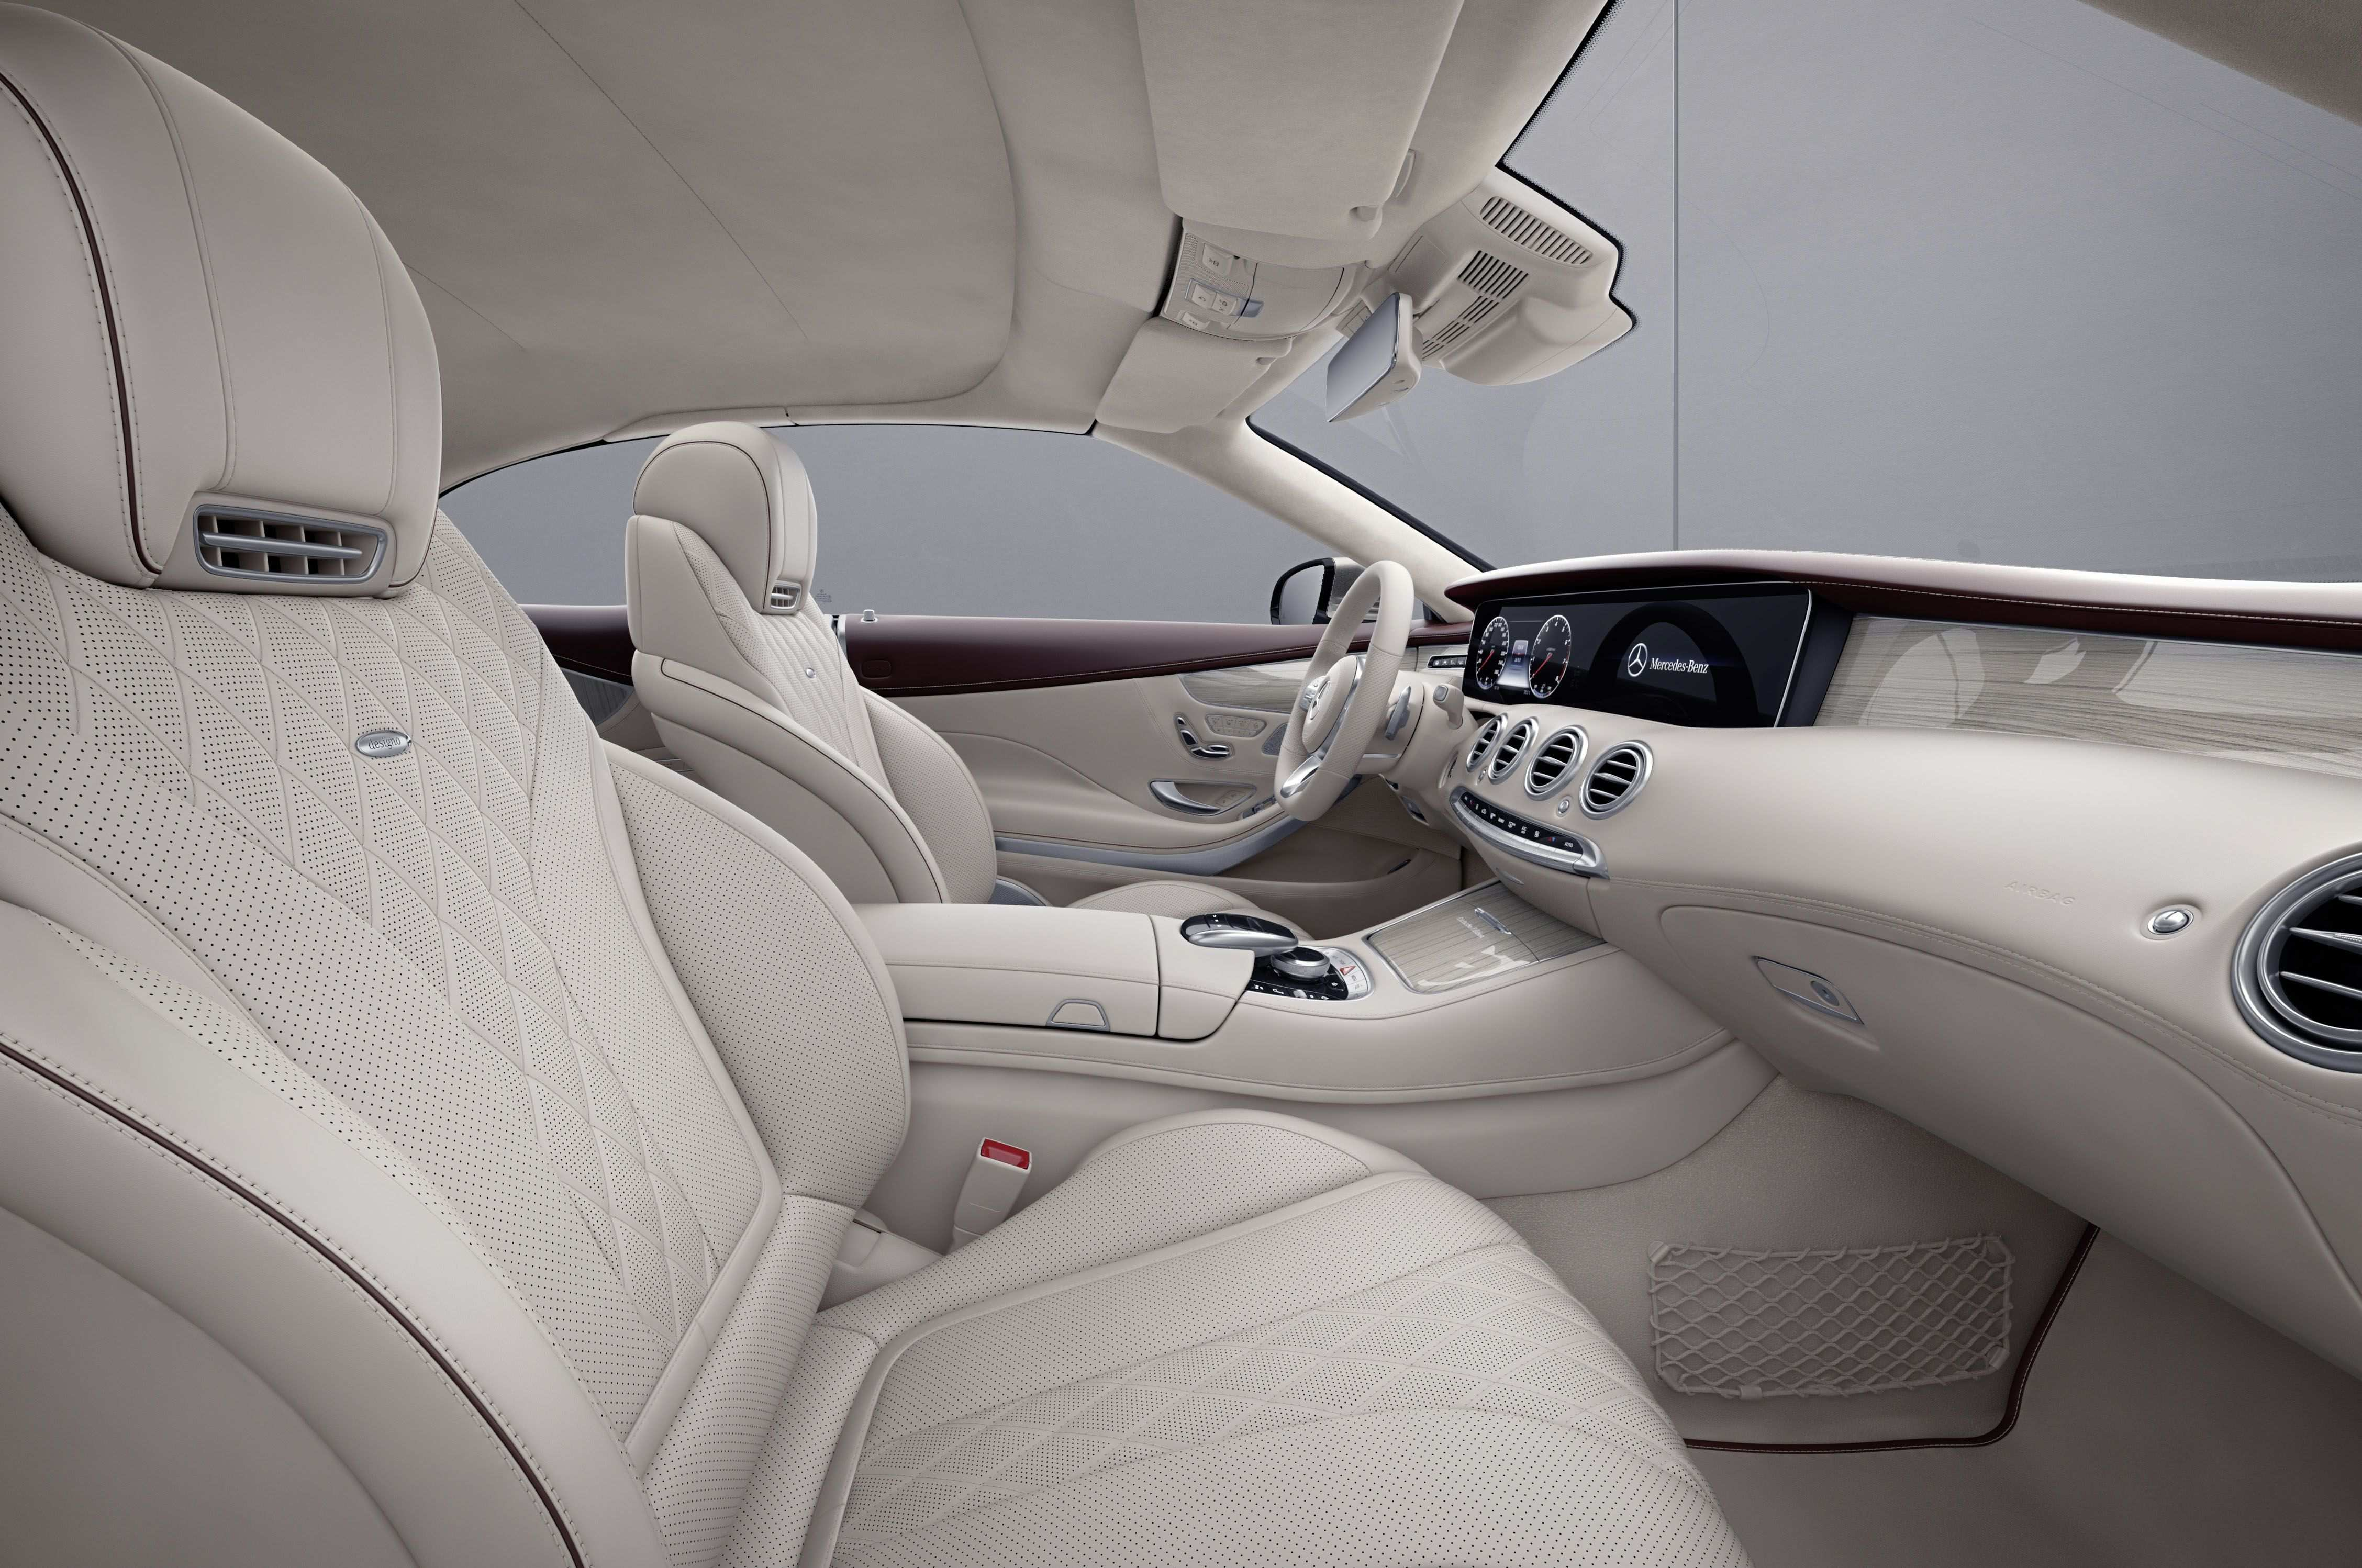 33 Great New Mercedes 2019 S Class Release Date Overview Style with New Mercedes 2019 S Class Release Date Overview